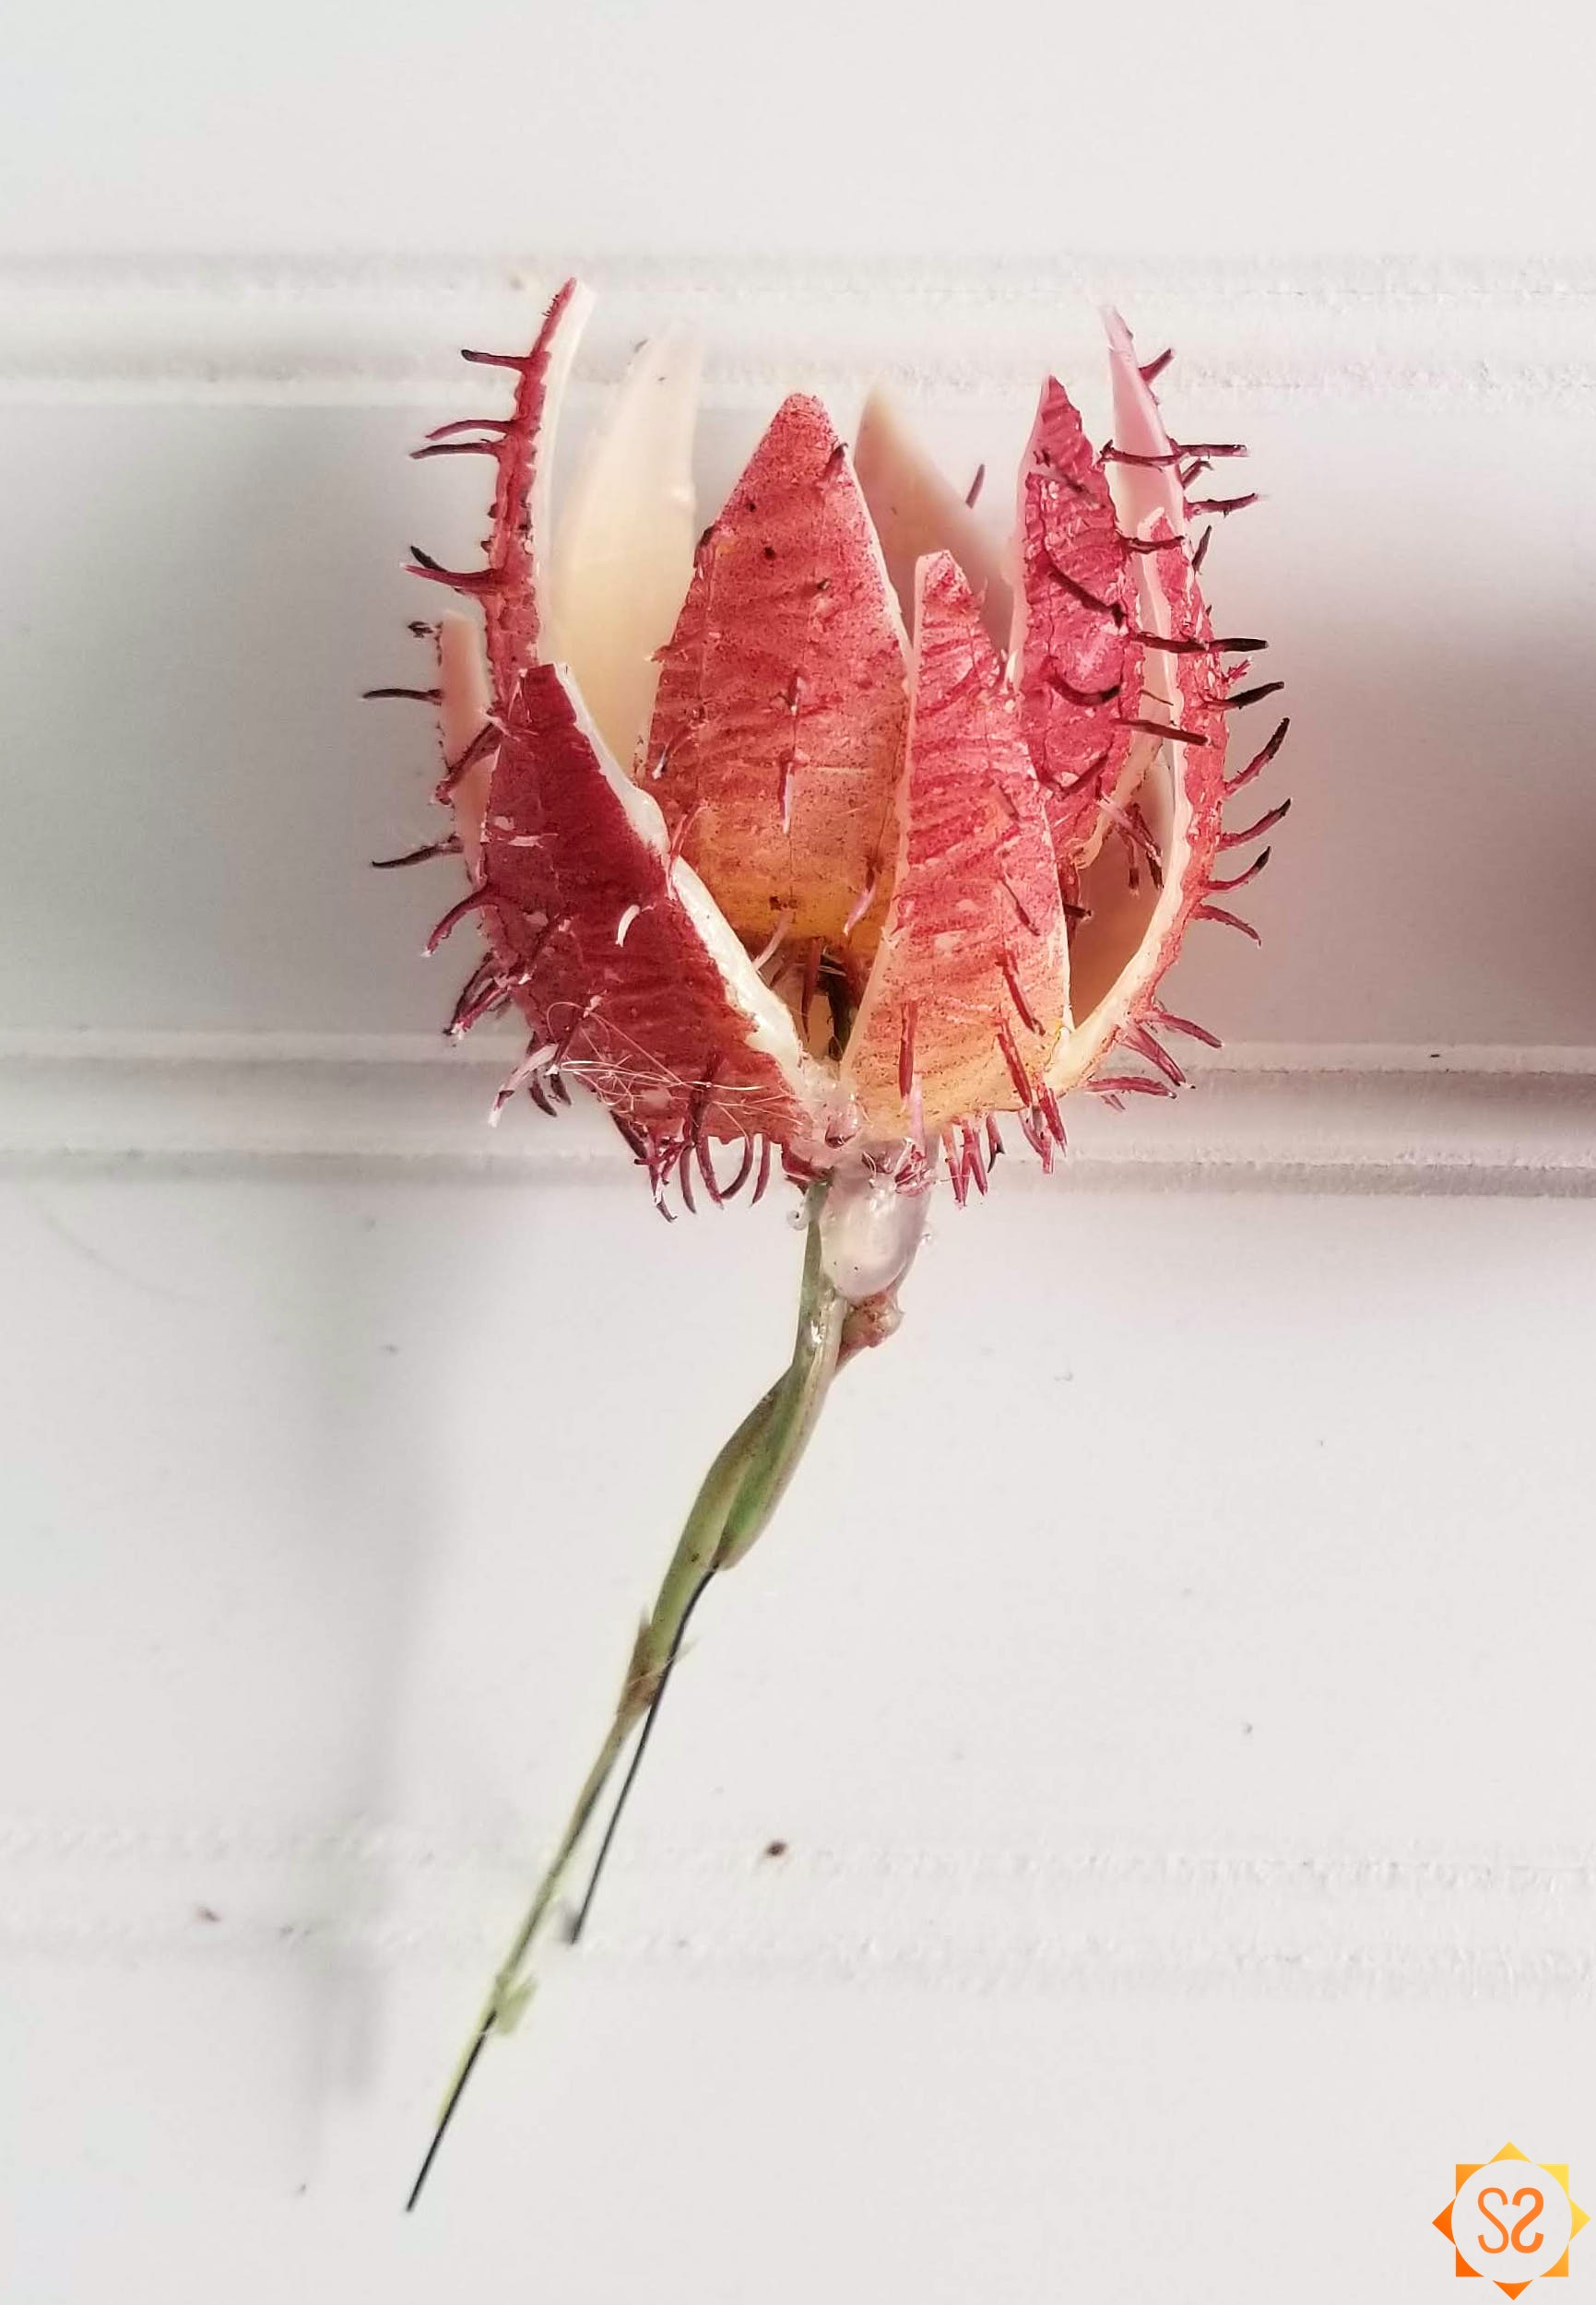 The assembled red flower